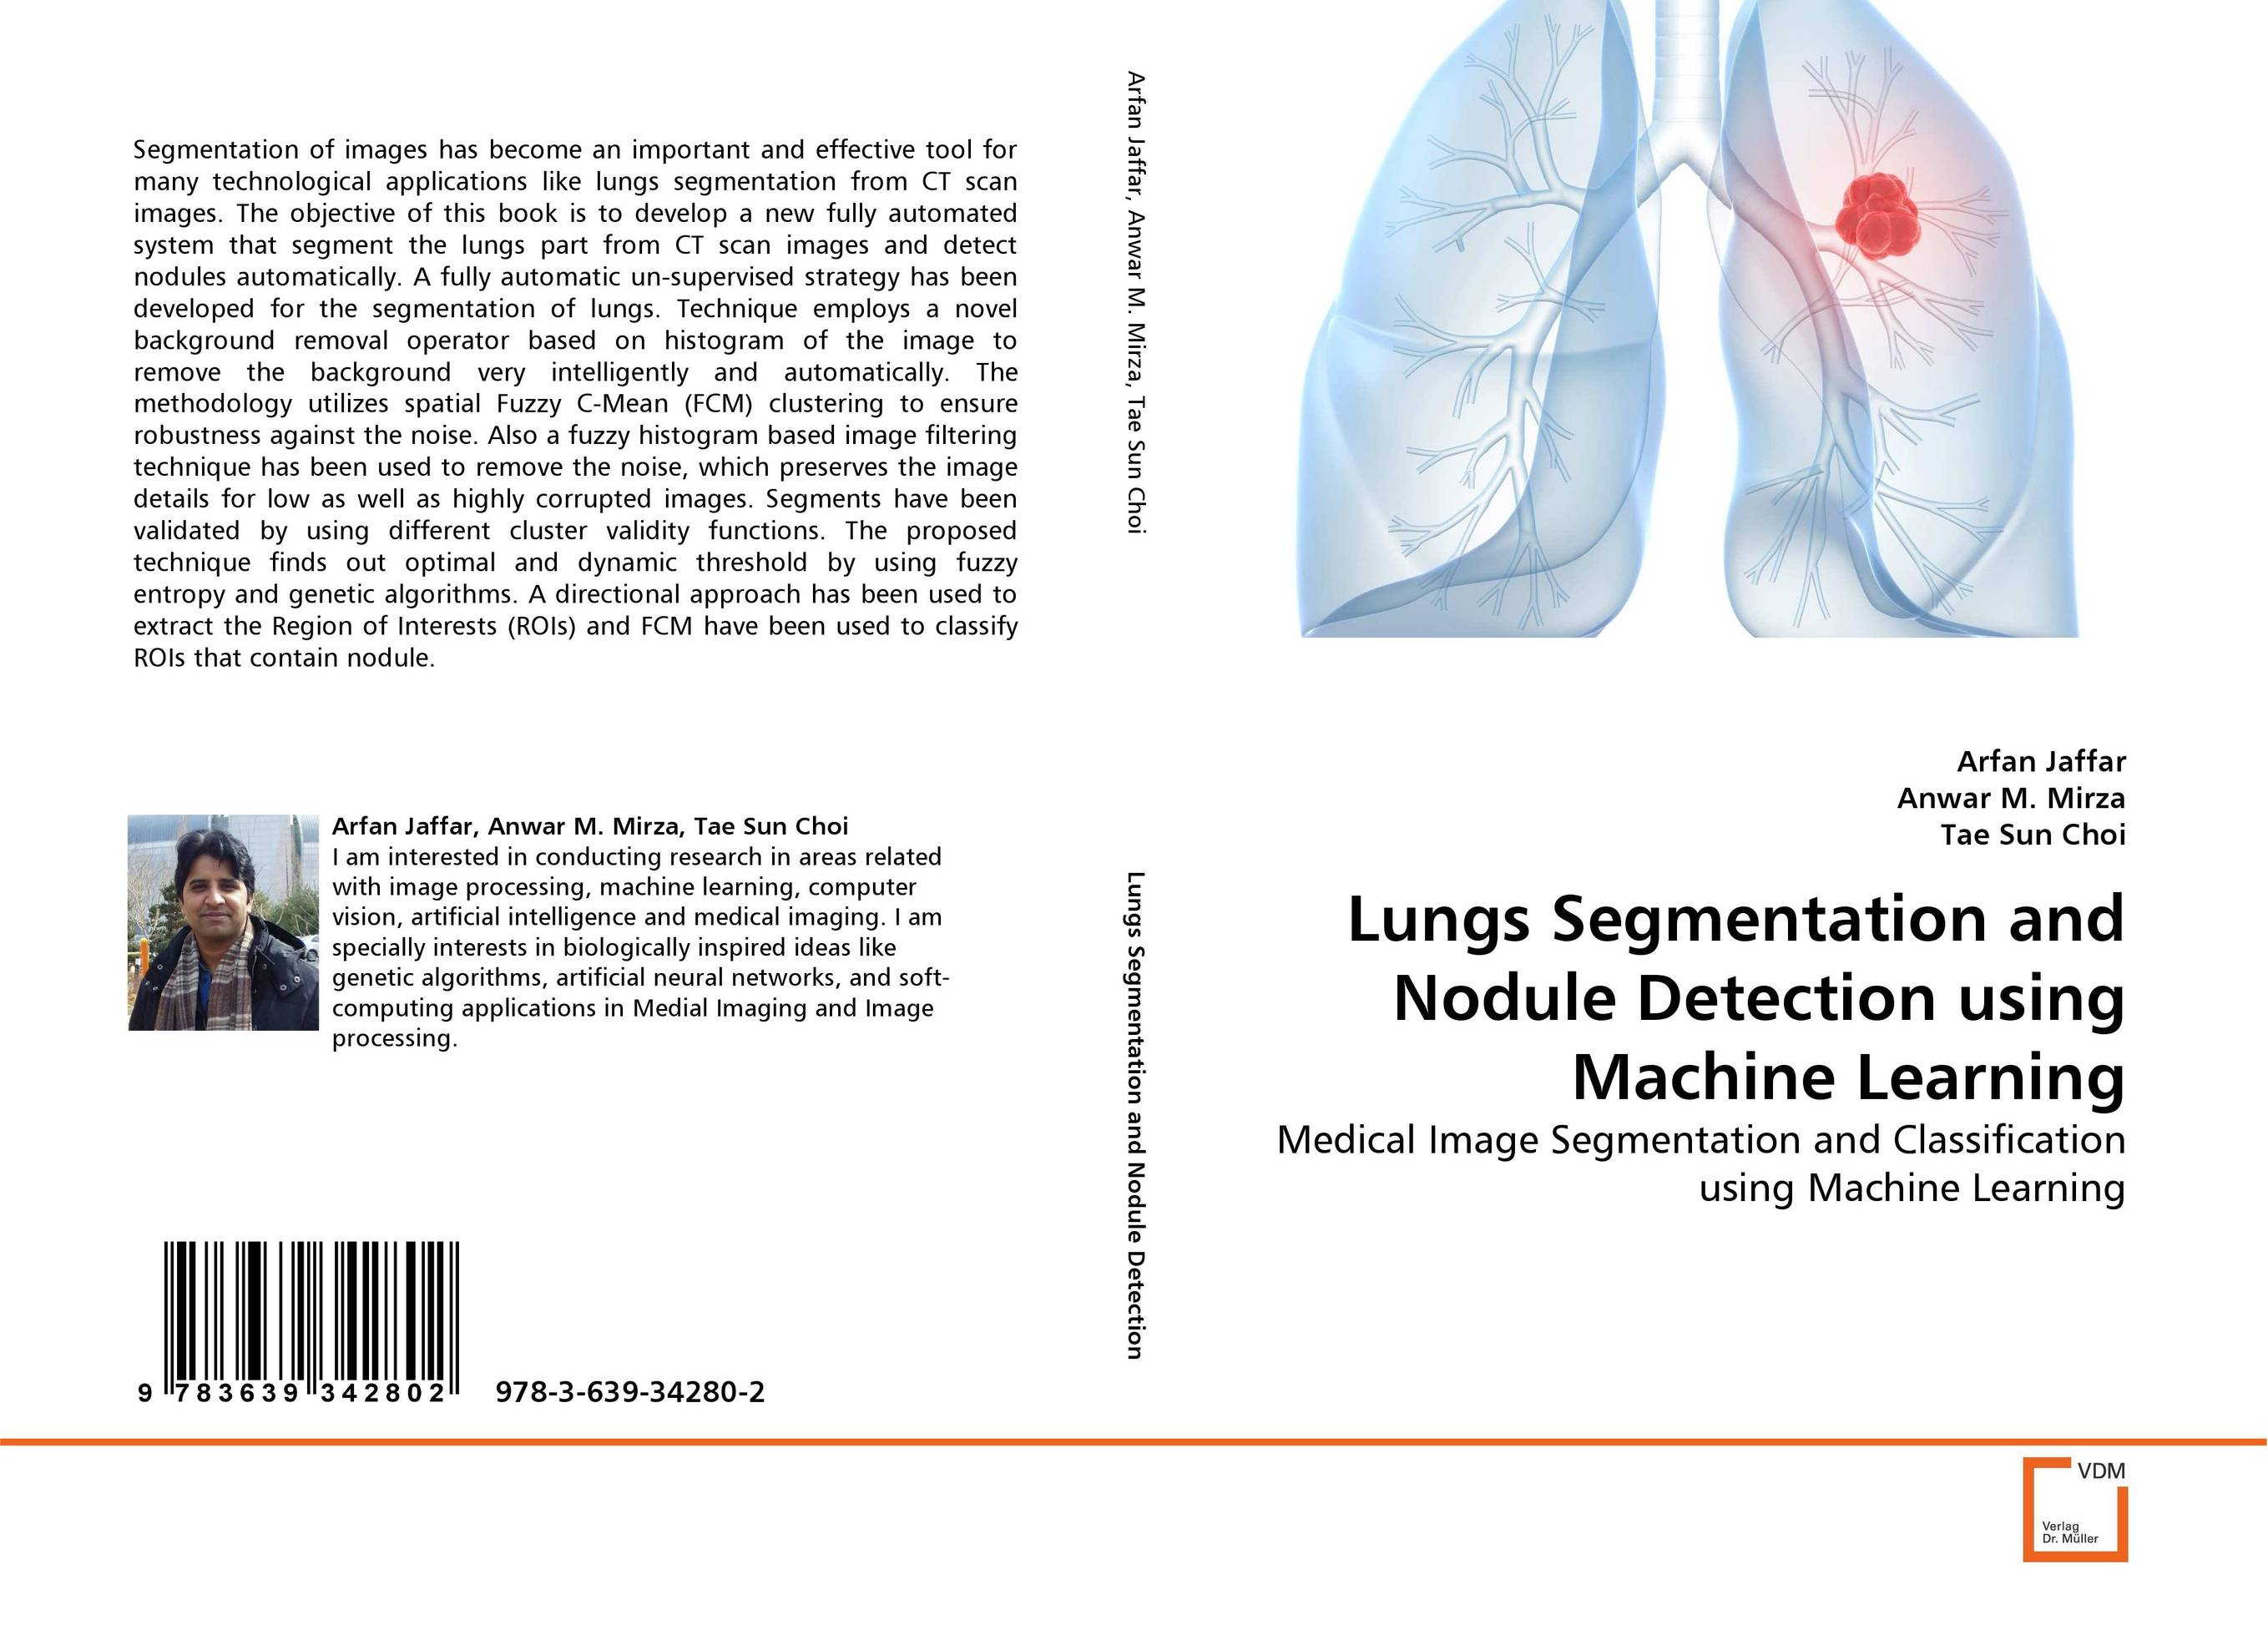 купить Lungs Segmentation and Nodule Detection using Machine Learning недорого